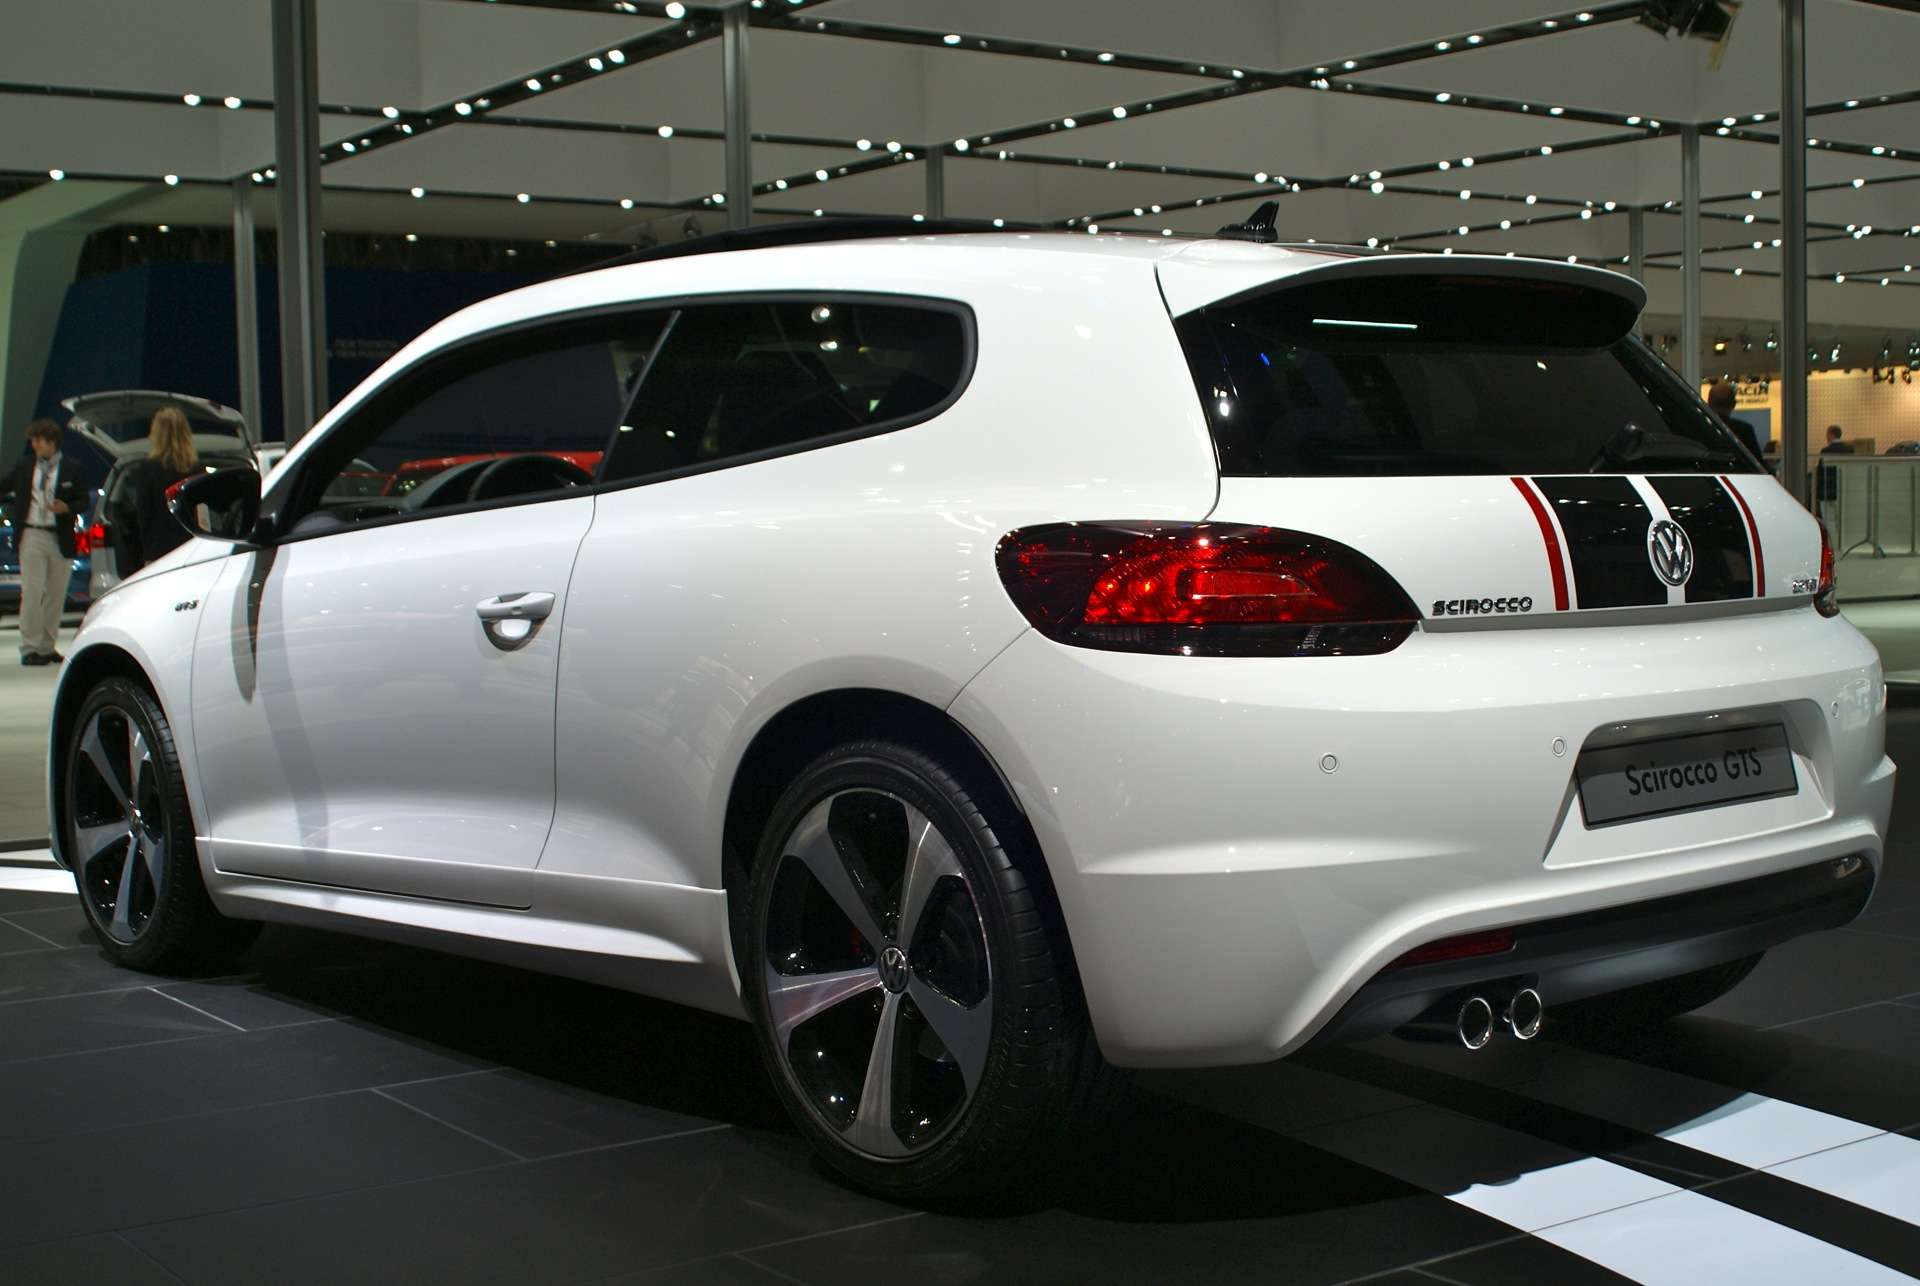 ami 2012 vw scirocco gts coup automobil blog. Black Bedroom Furniture Sets. Home Design Ideas